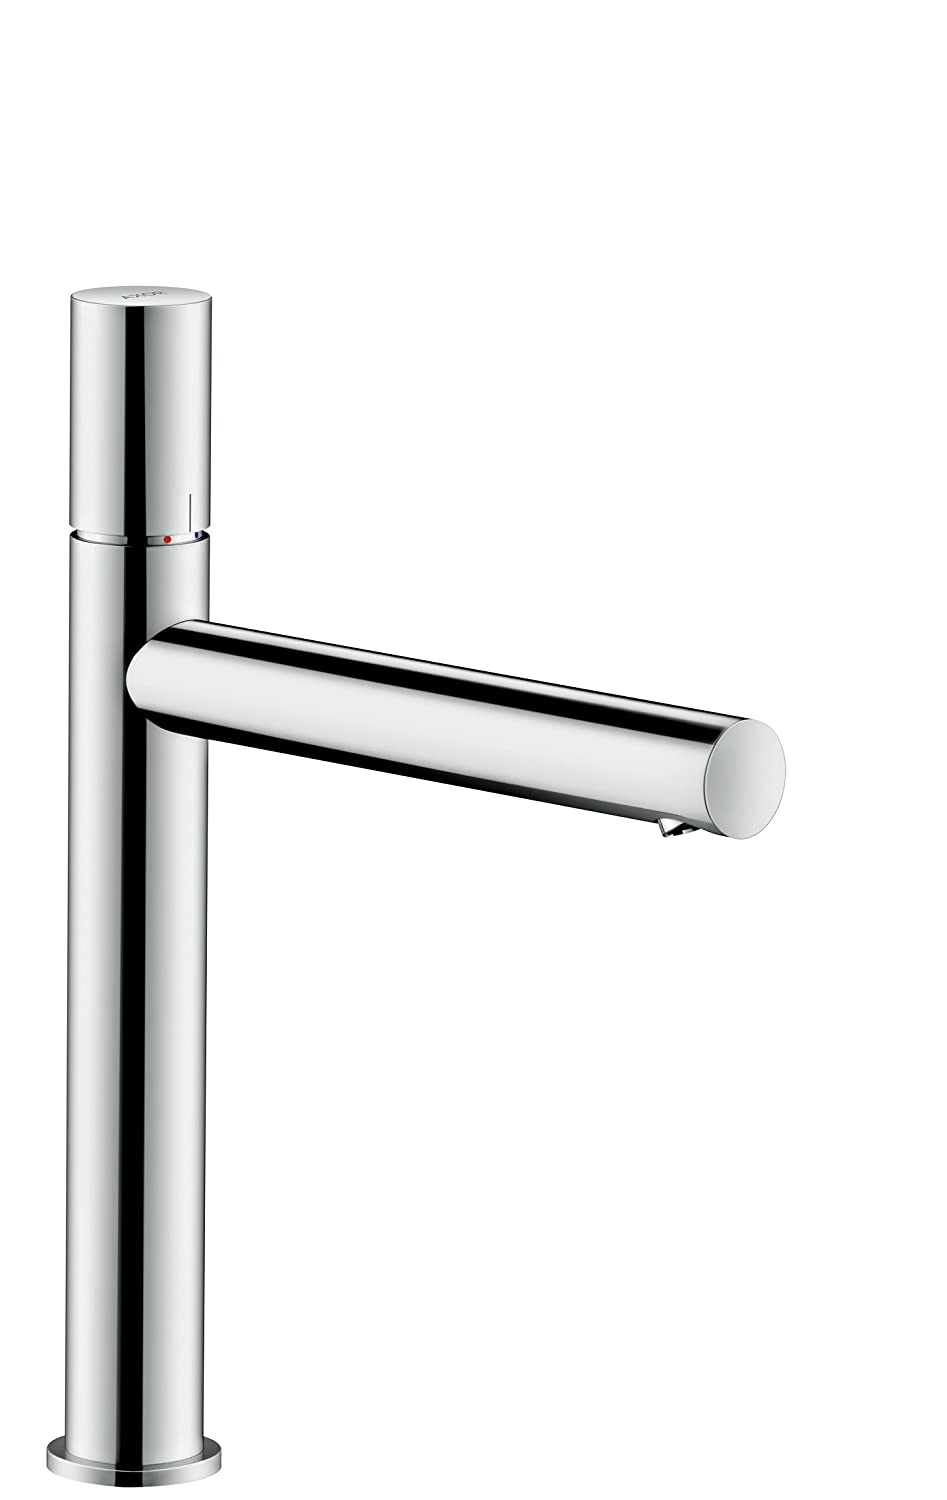 Without Waste AXOR Uno Basin Tap 200 Zero Handle chrome